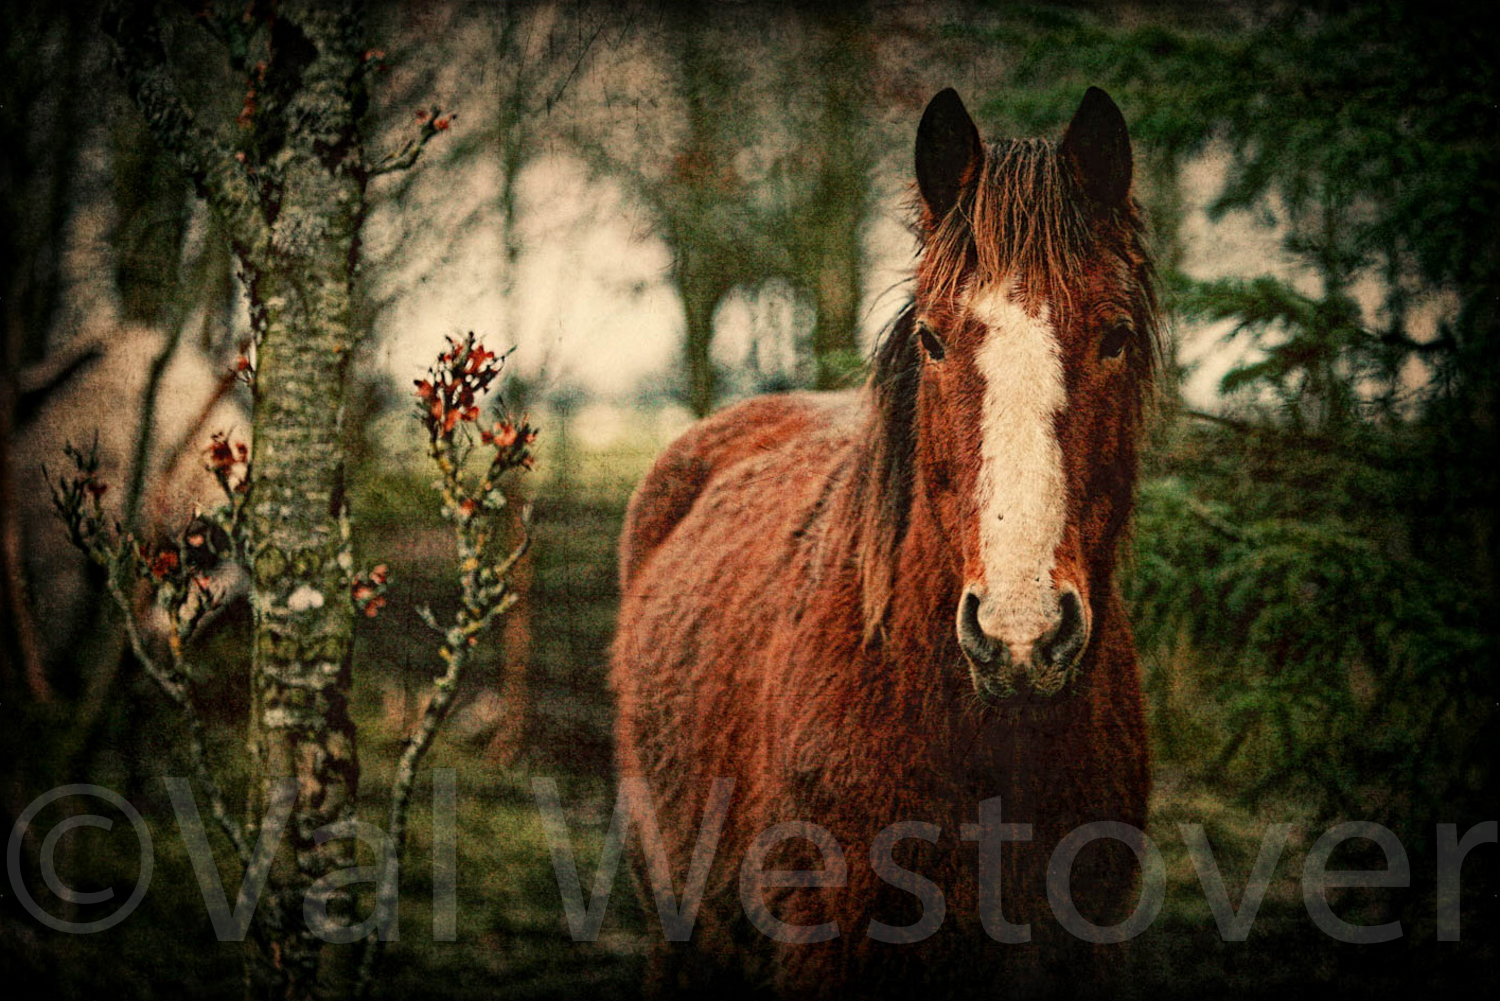 val-westover-photography--38.jpg